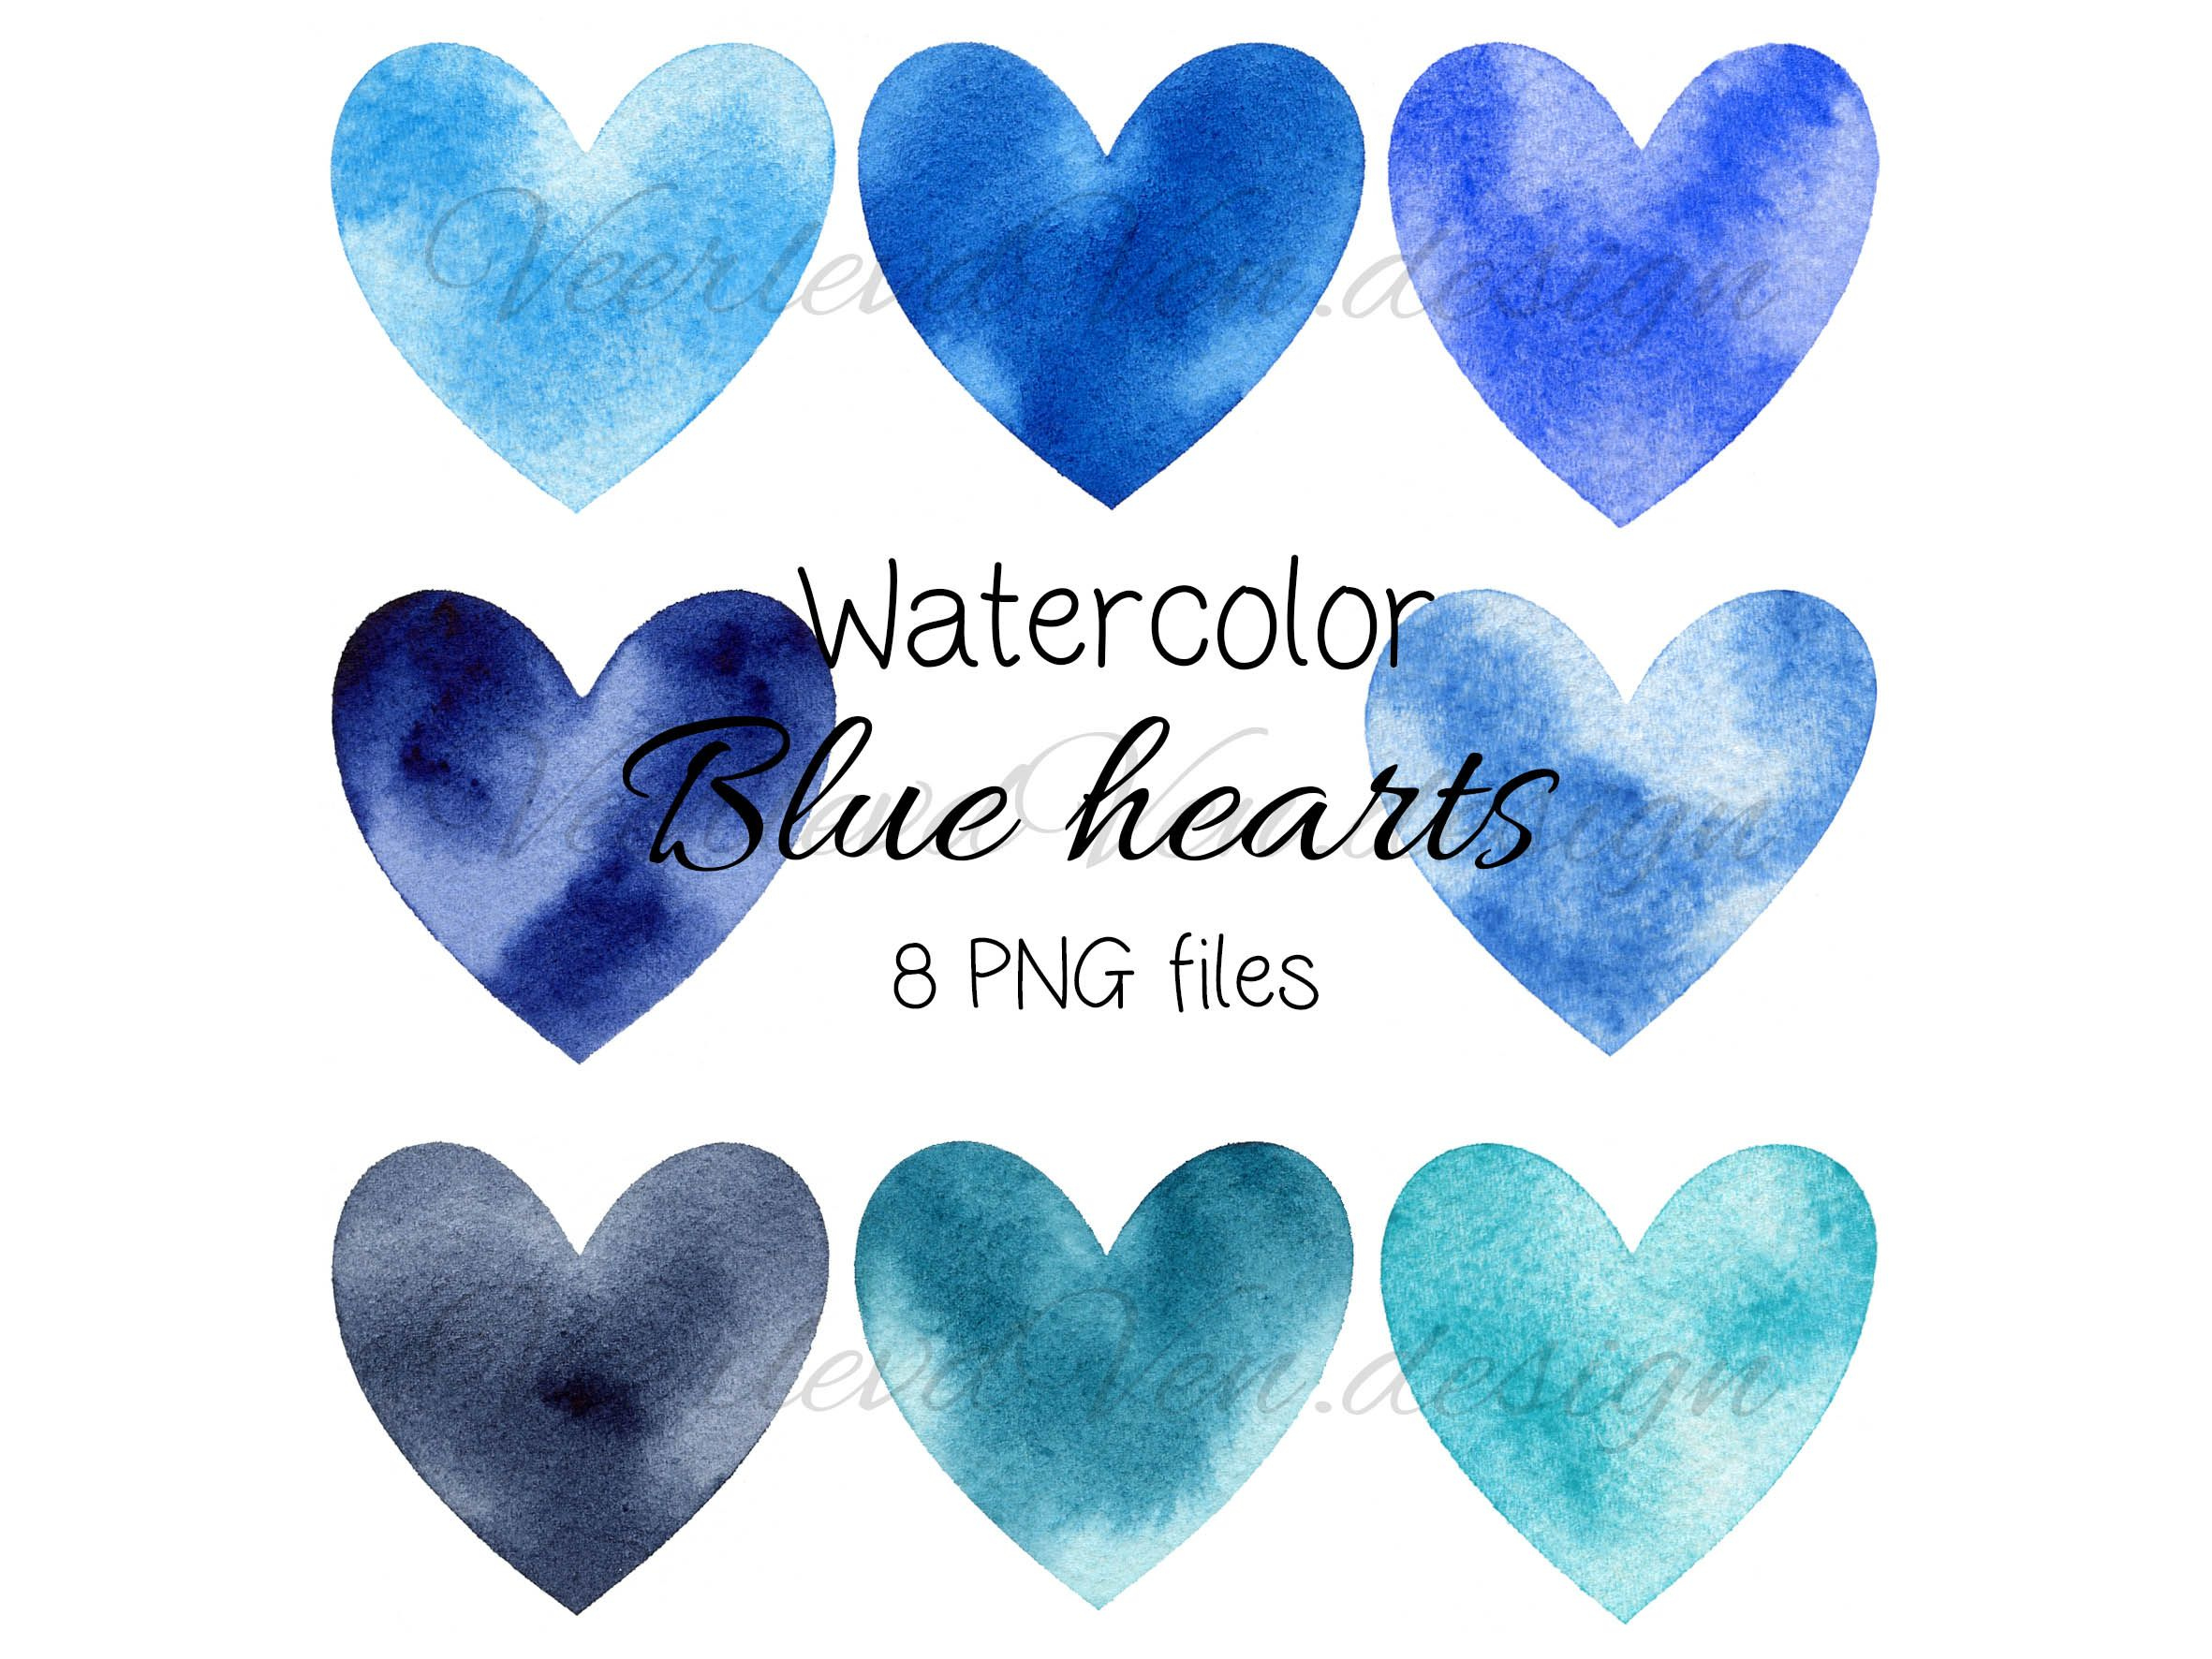 Watercolor Blue Hearts Clipart Png File Digital Download Etsy In 2021 Clip Art Digital Download Etsy Watercolor Heart